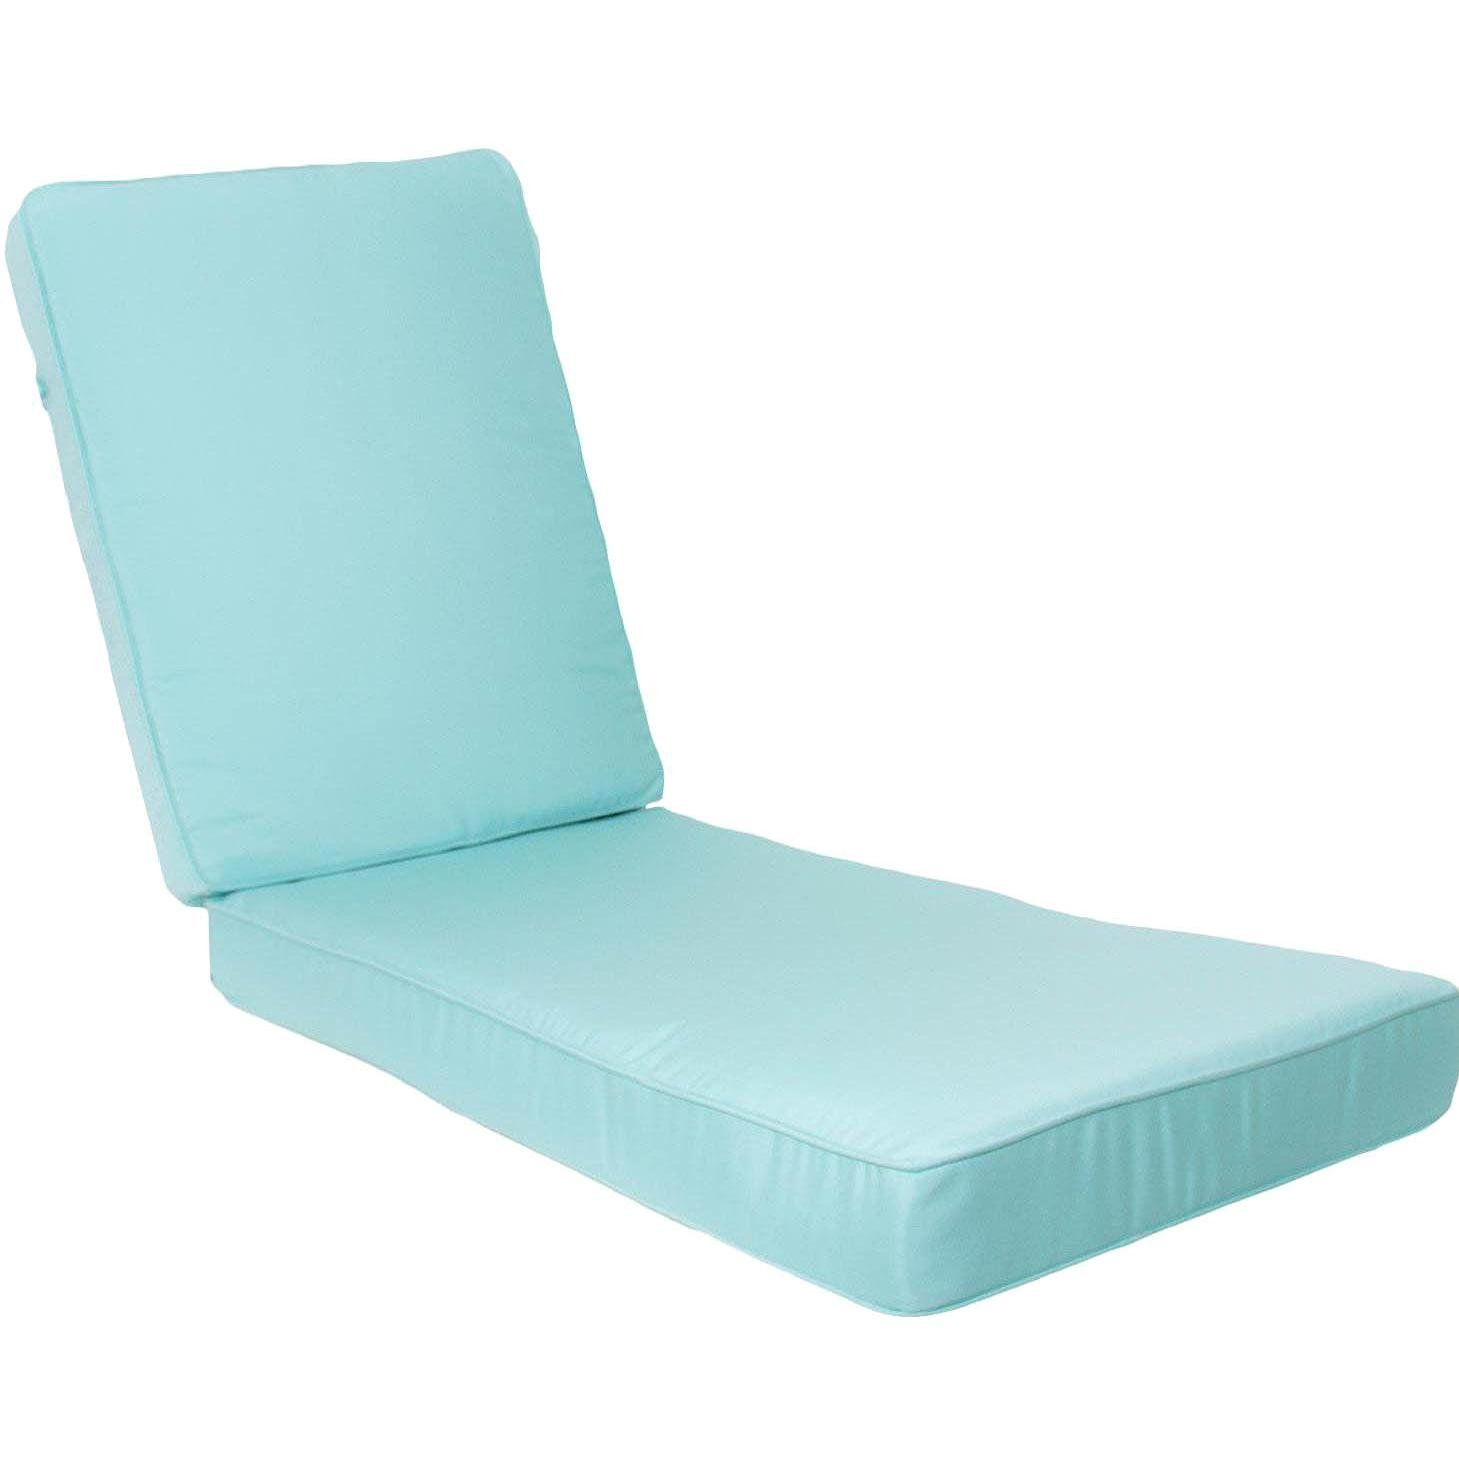 Ultimatepatio.com Long Replacement Outdoor Chaise Lounge Cushion With  Piping   Canvas Glacier. All